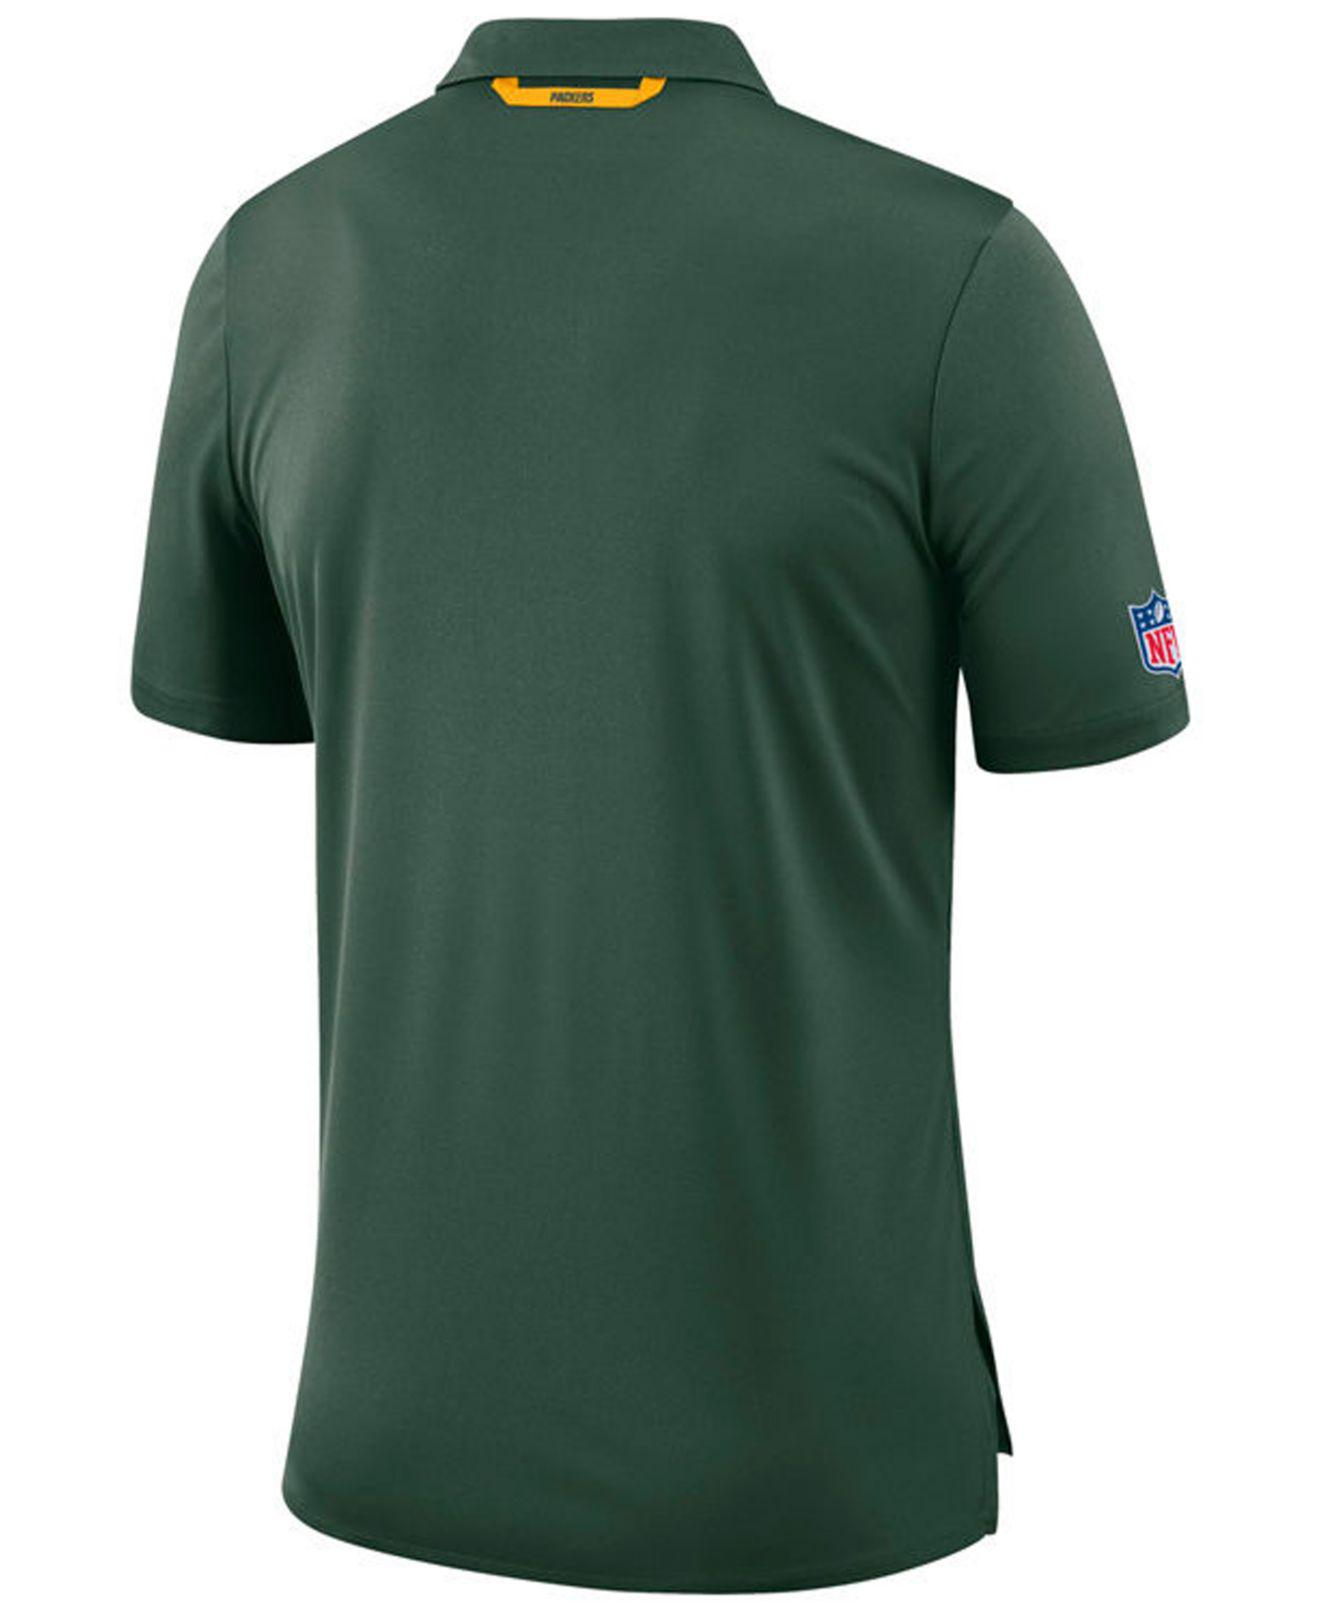 Lyst - Nike Green Bay Packers Early Season Polo in Green for Men 29e6c64c2